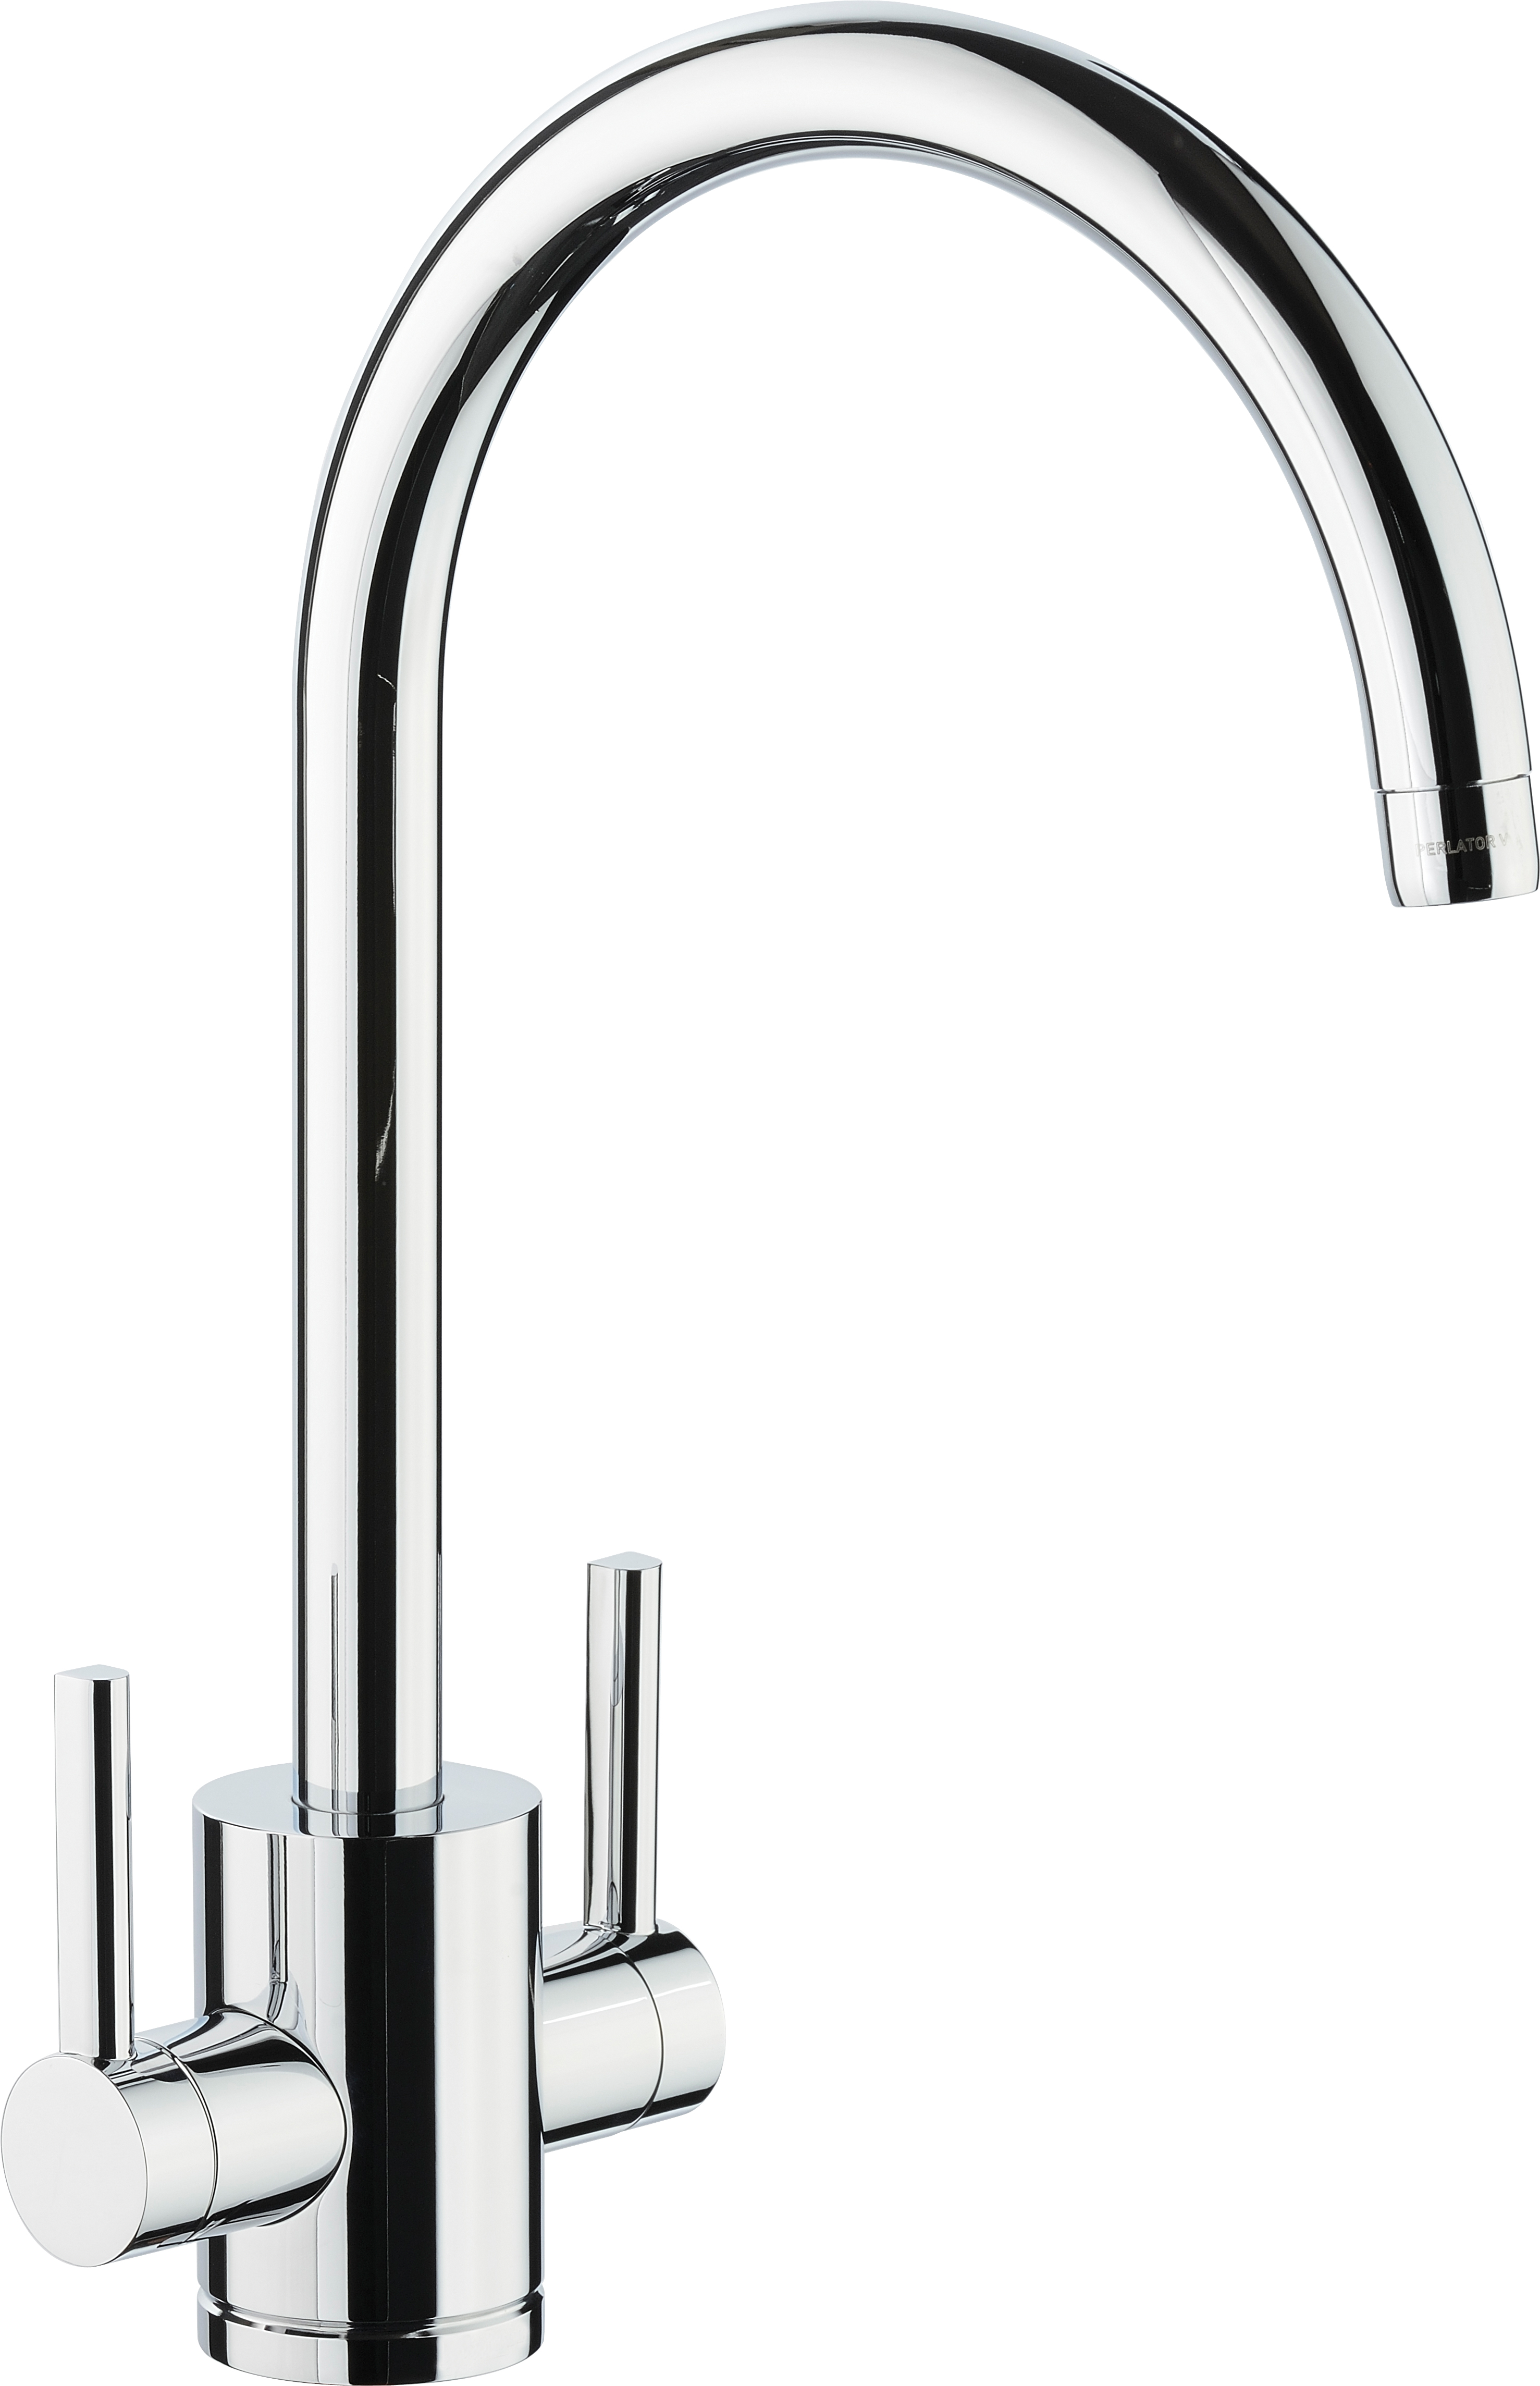 'Droitwich' Dual Lever Filter Tap in a Chrome Finish